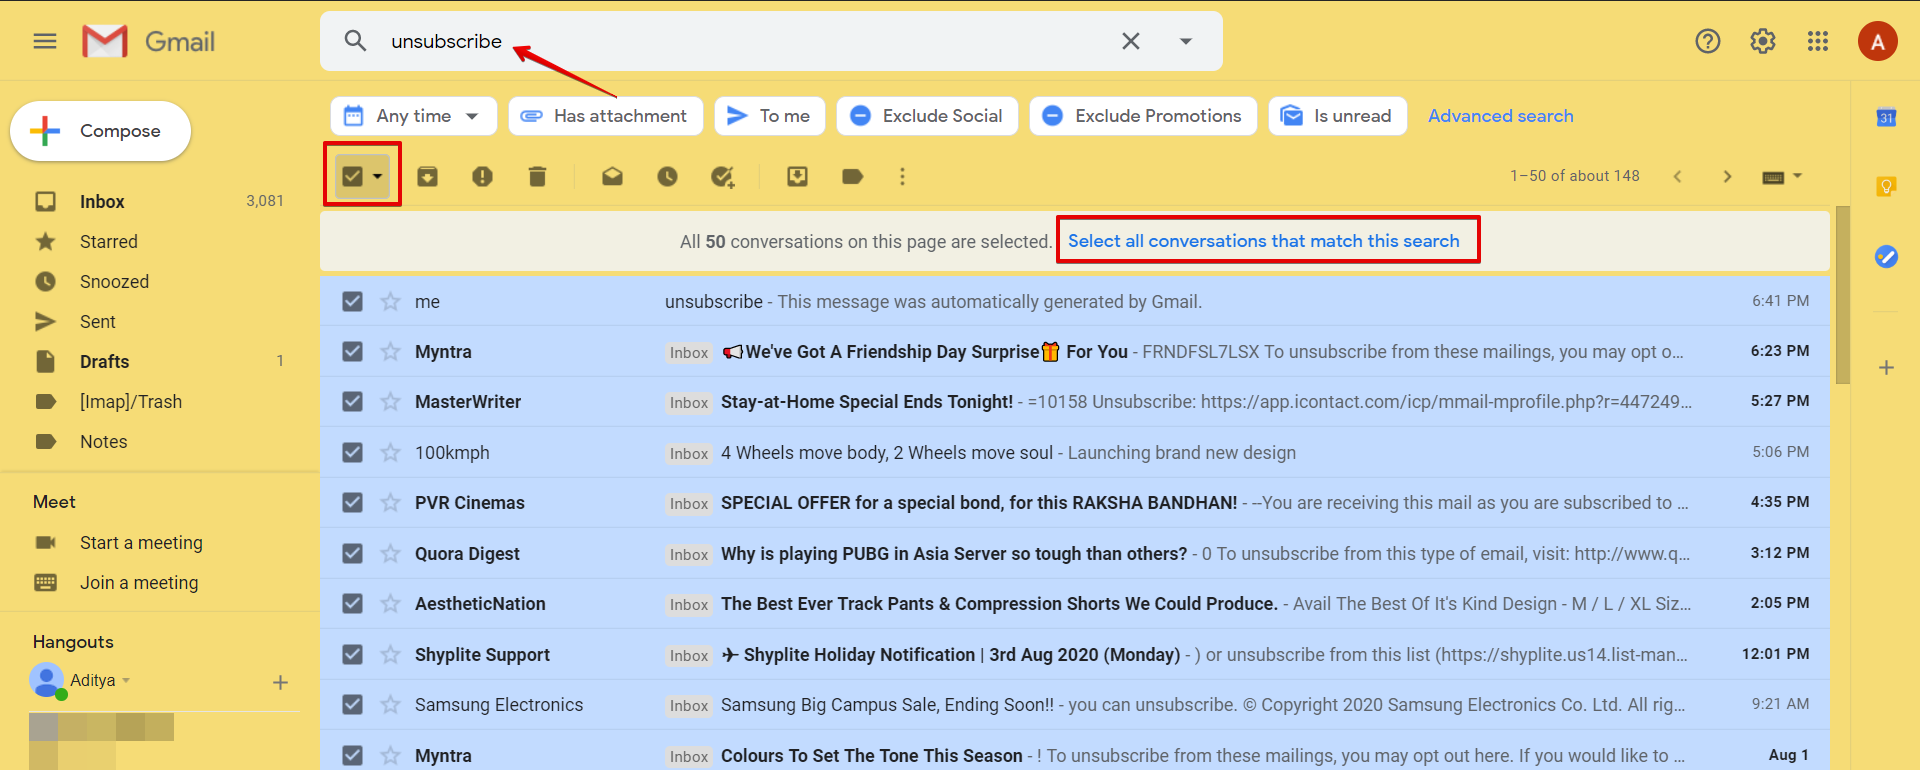 Image showing how to delete all spam emails.